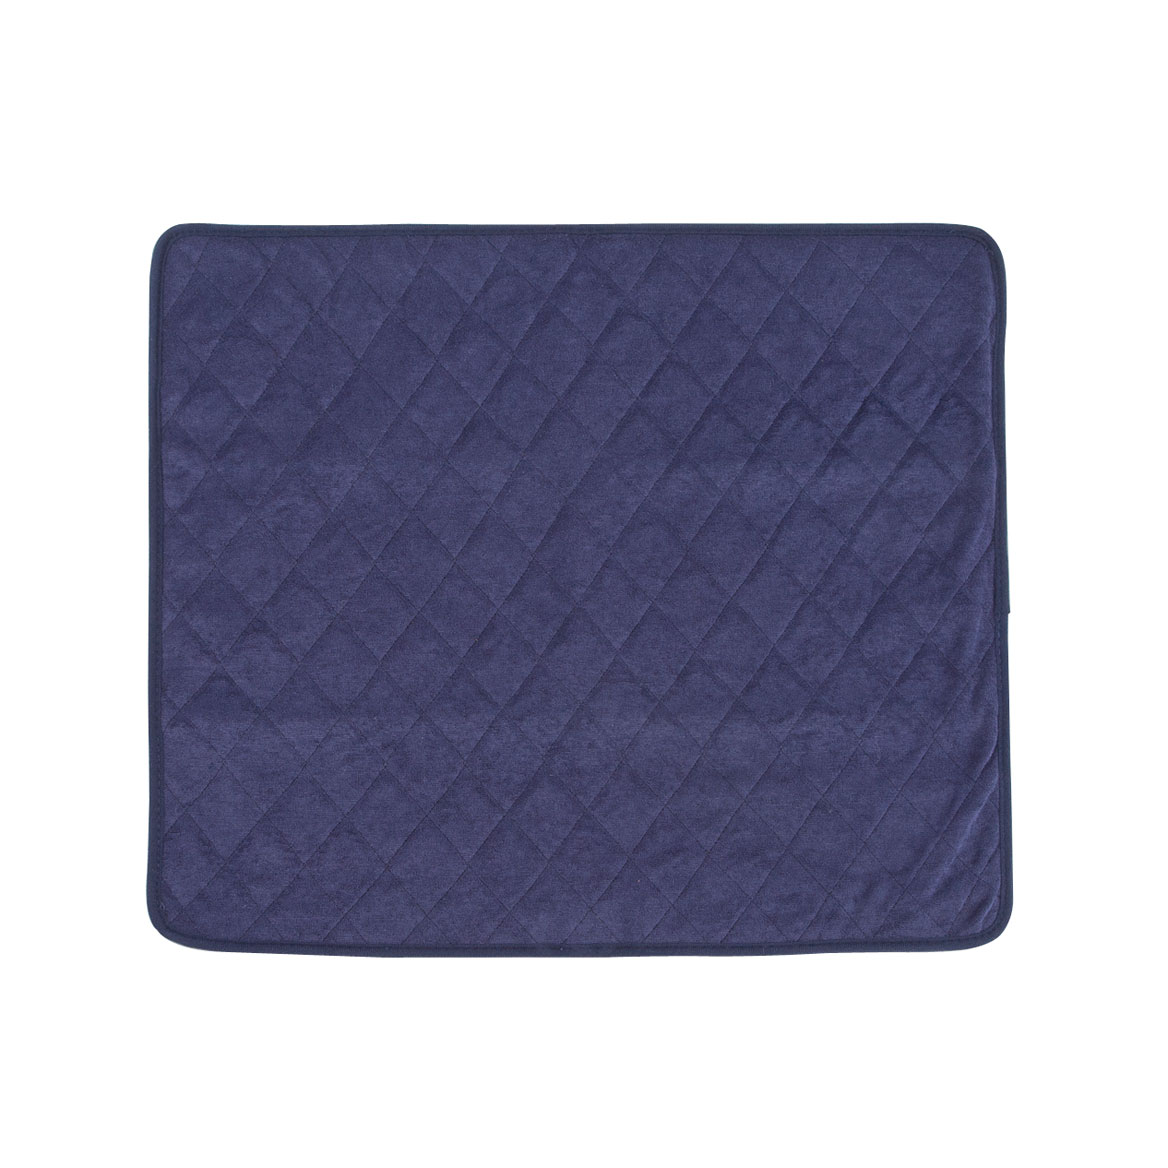 Waterproof Seat Protector, Quilted-359872